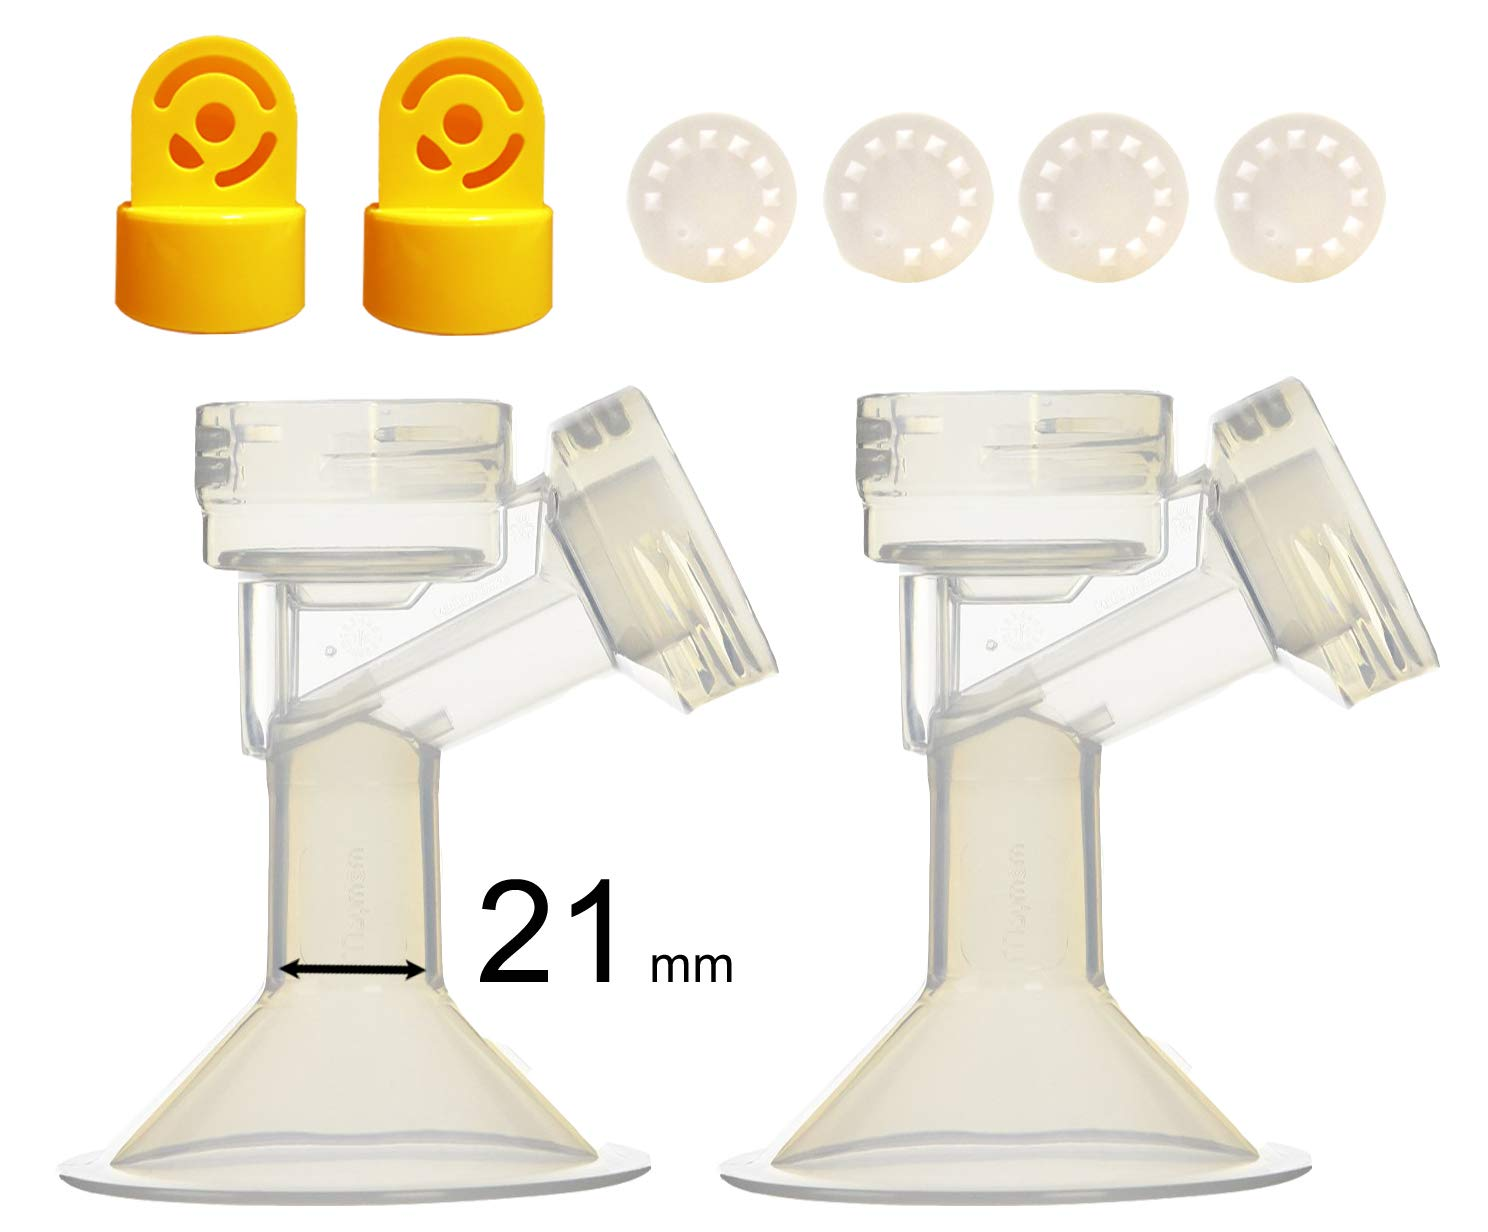 21 mm 2xOne-Piece Small Breastshield w/ Valve and Membrane for Medela Breast Pumps; Replacement to Medela PersonalFit 21 Breastshield and Personal Fit Connector; Made by Maymom by Maymom